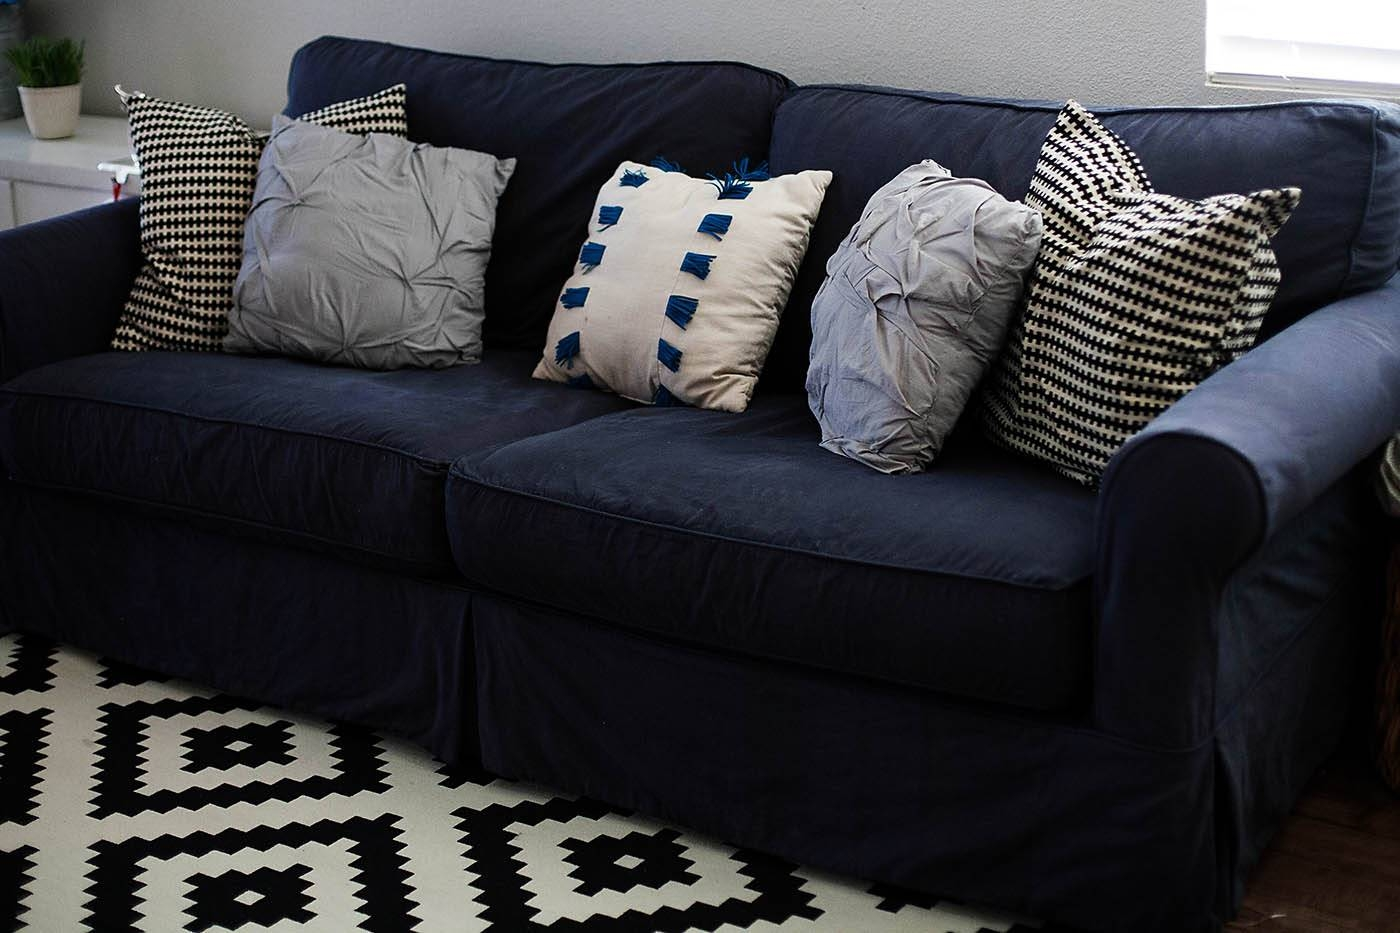 How To Dye A Sofa Slipcover in Navy Blue Slipcovers (Image 11 of 15)